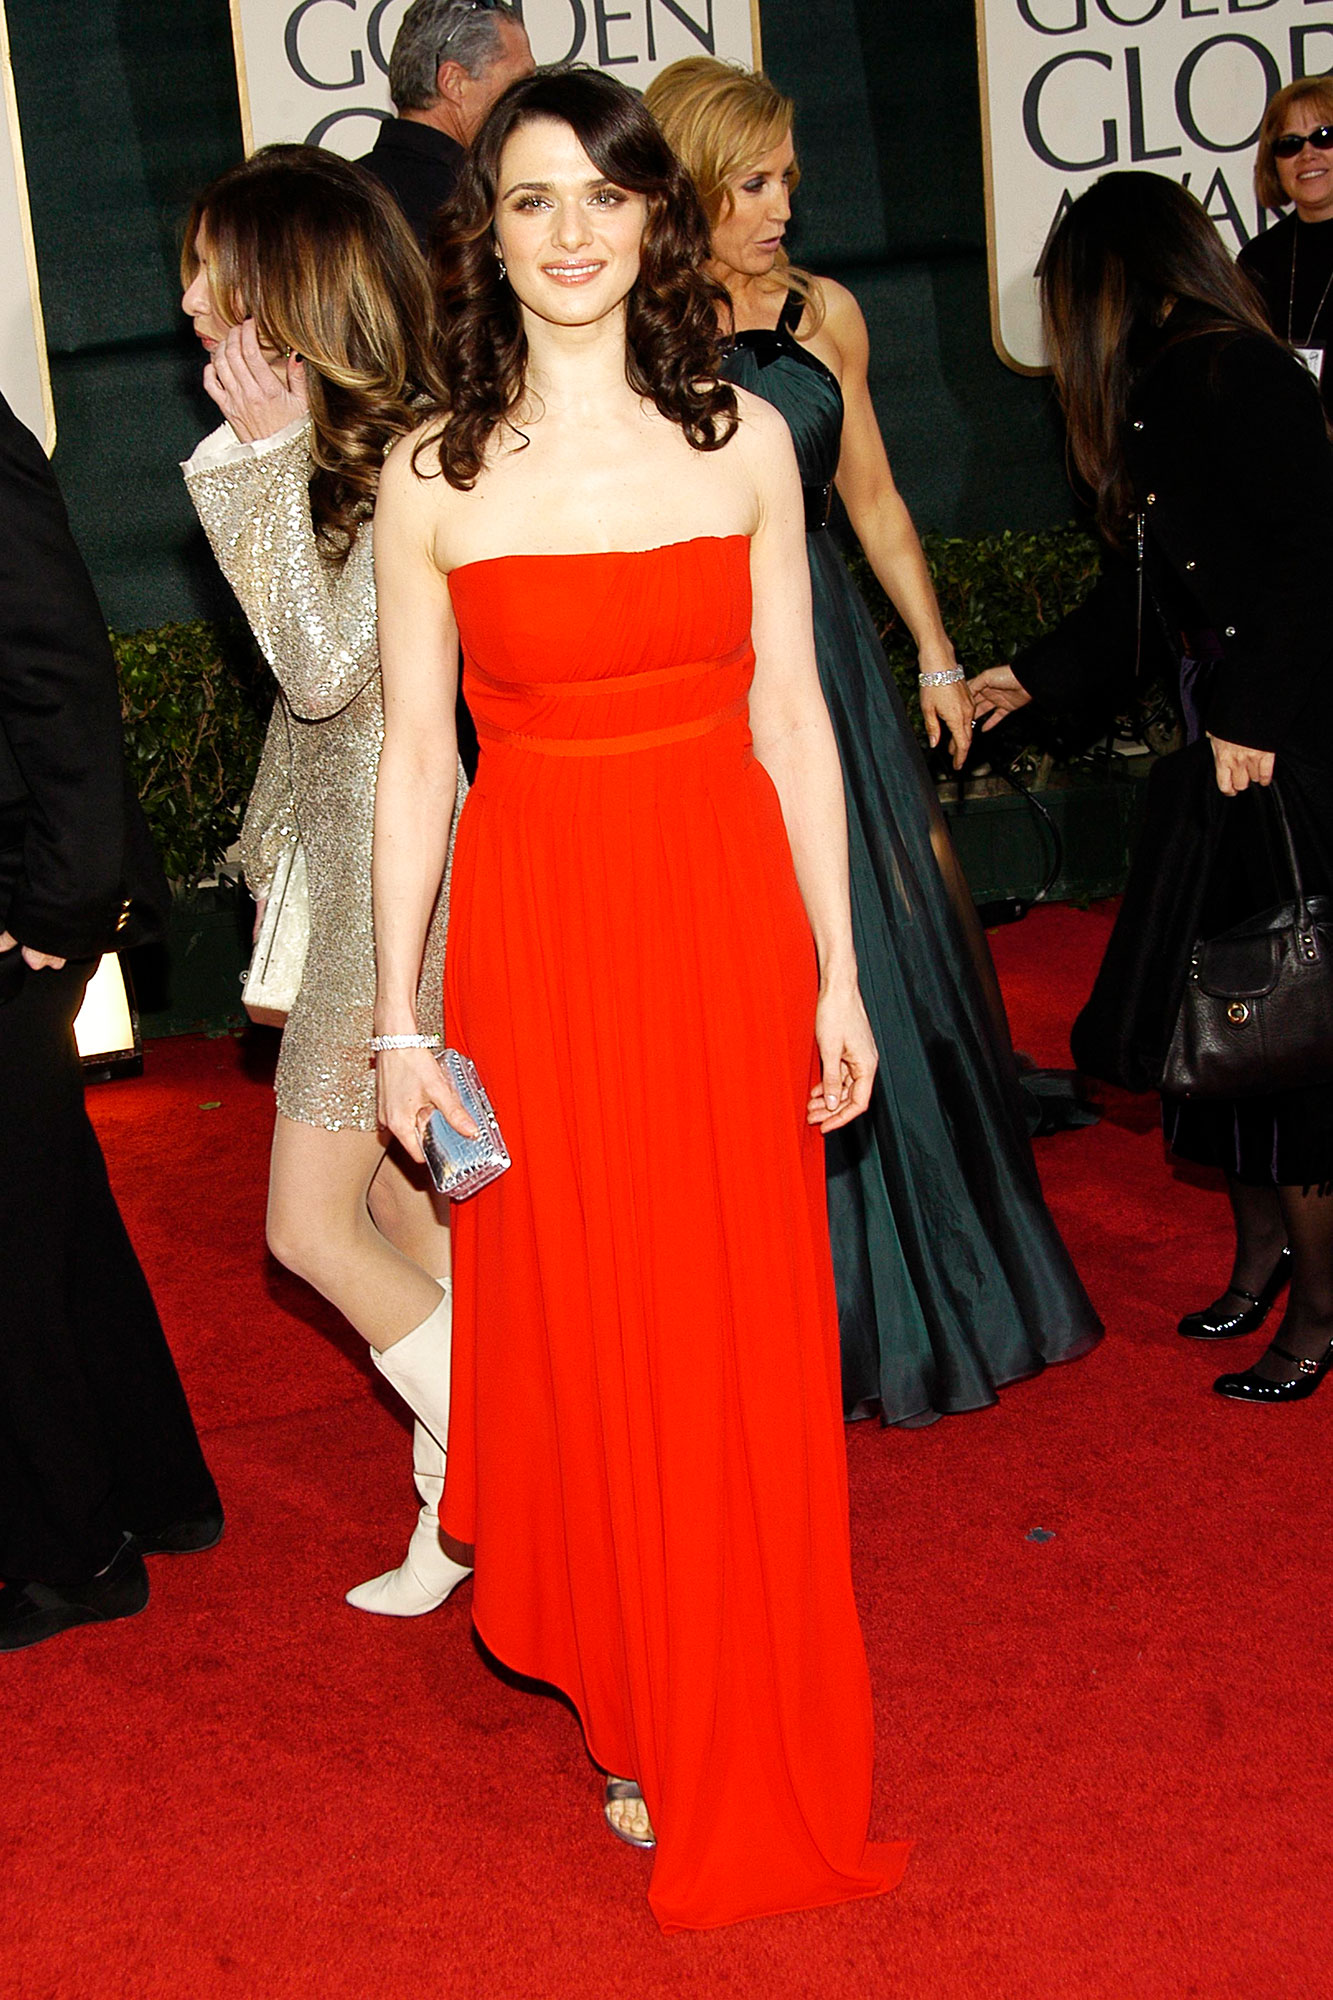 Happy Birthday, Rachel Weisz! See Her Hottest Red Carpet Looks - Going back to her minimalist roots, the brunette beauty wore a red floor-length strapless gown to the 2007 Golden Globes.